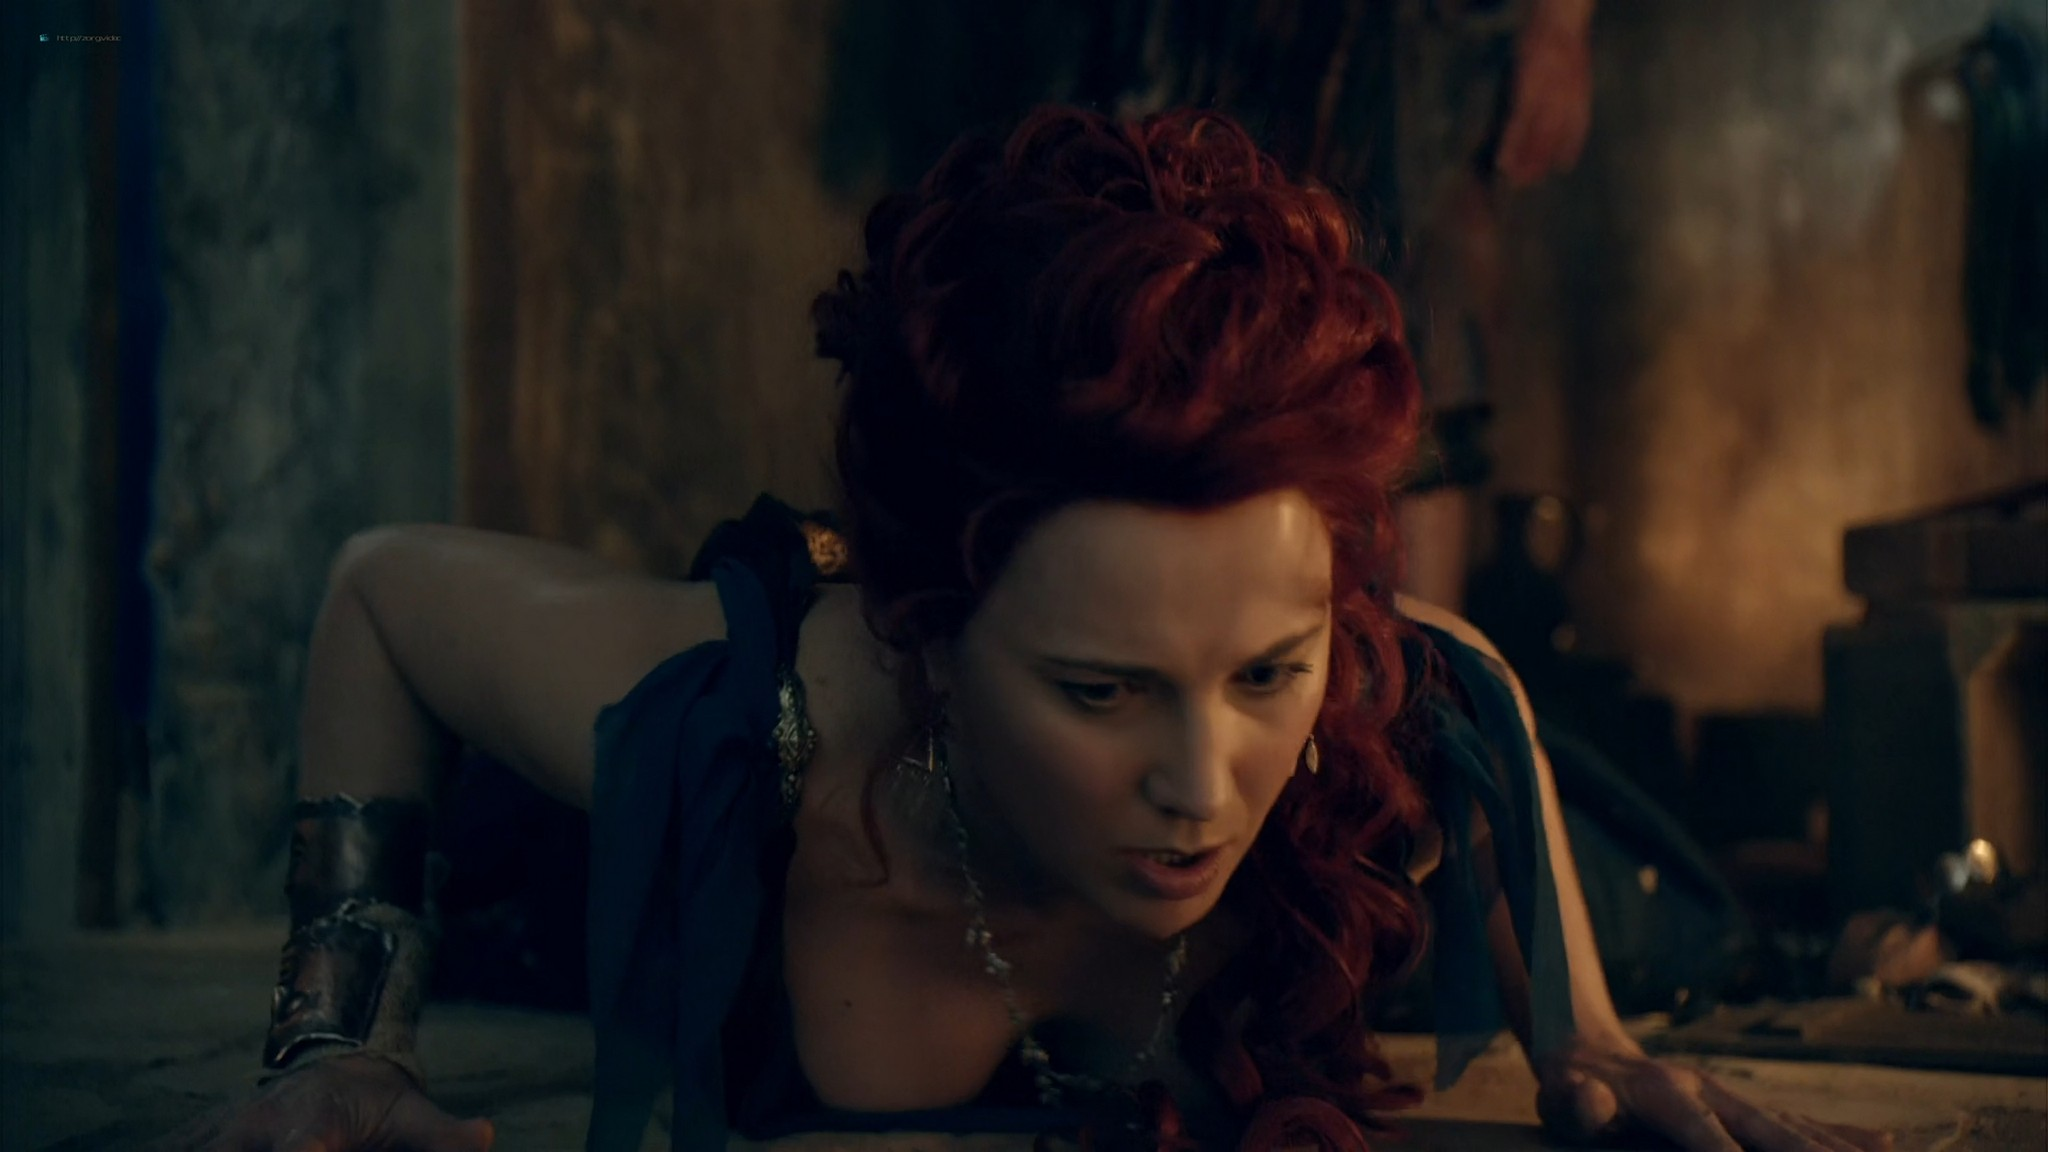 Hanna Mangan Lawrence nude sex Cynthia Addai Robinson and others nude Spartacus vengeance 2012 s2e8 9 HD 1080p BluRay 007